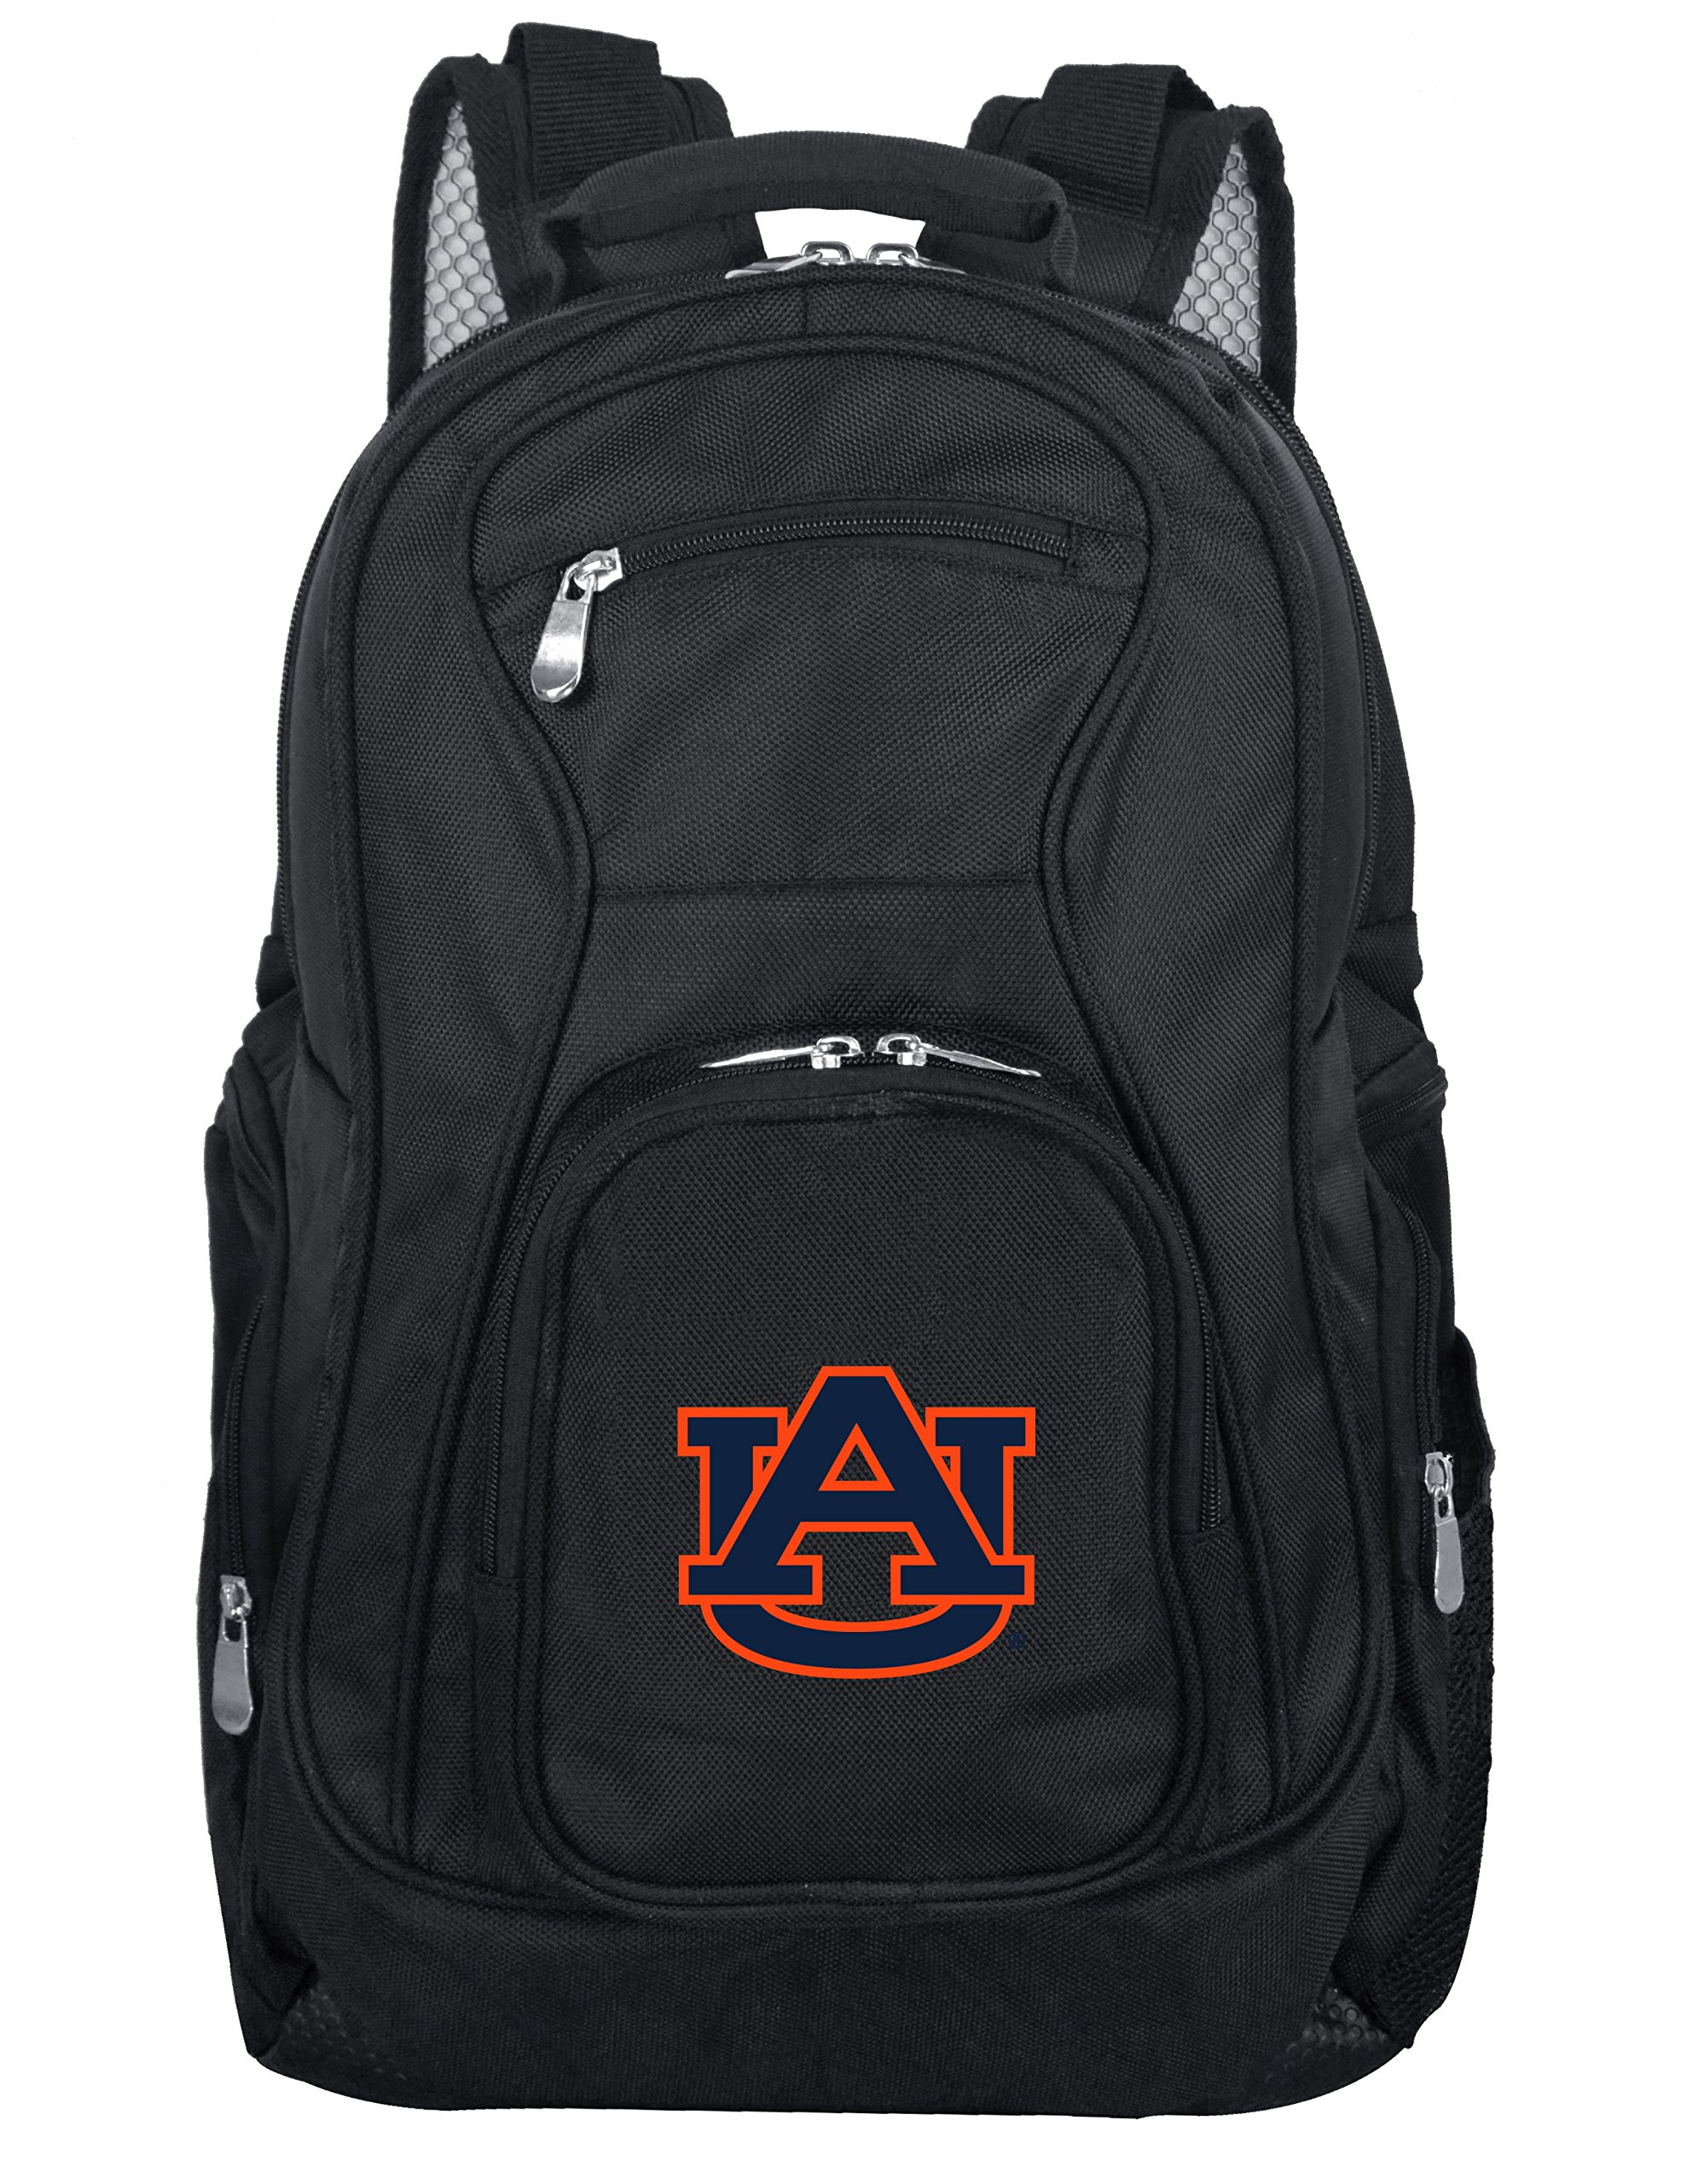 Denco NCAA Auburn Tigers Voyager Laptop Backpack, 19-inches, Black